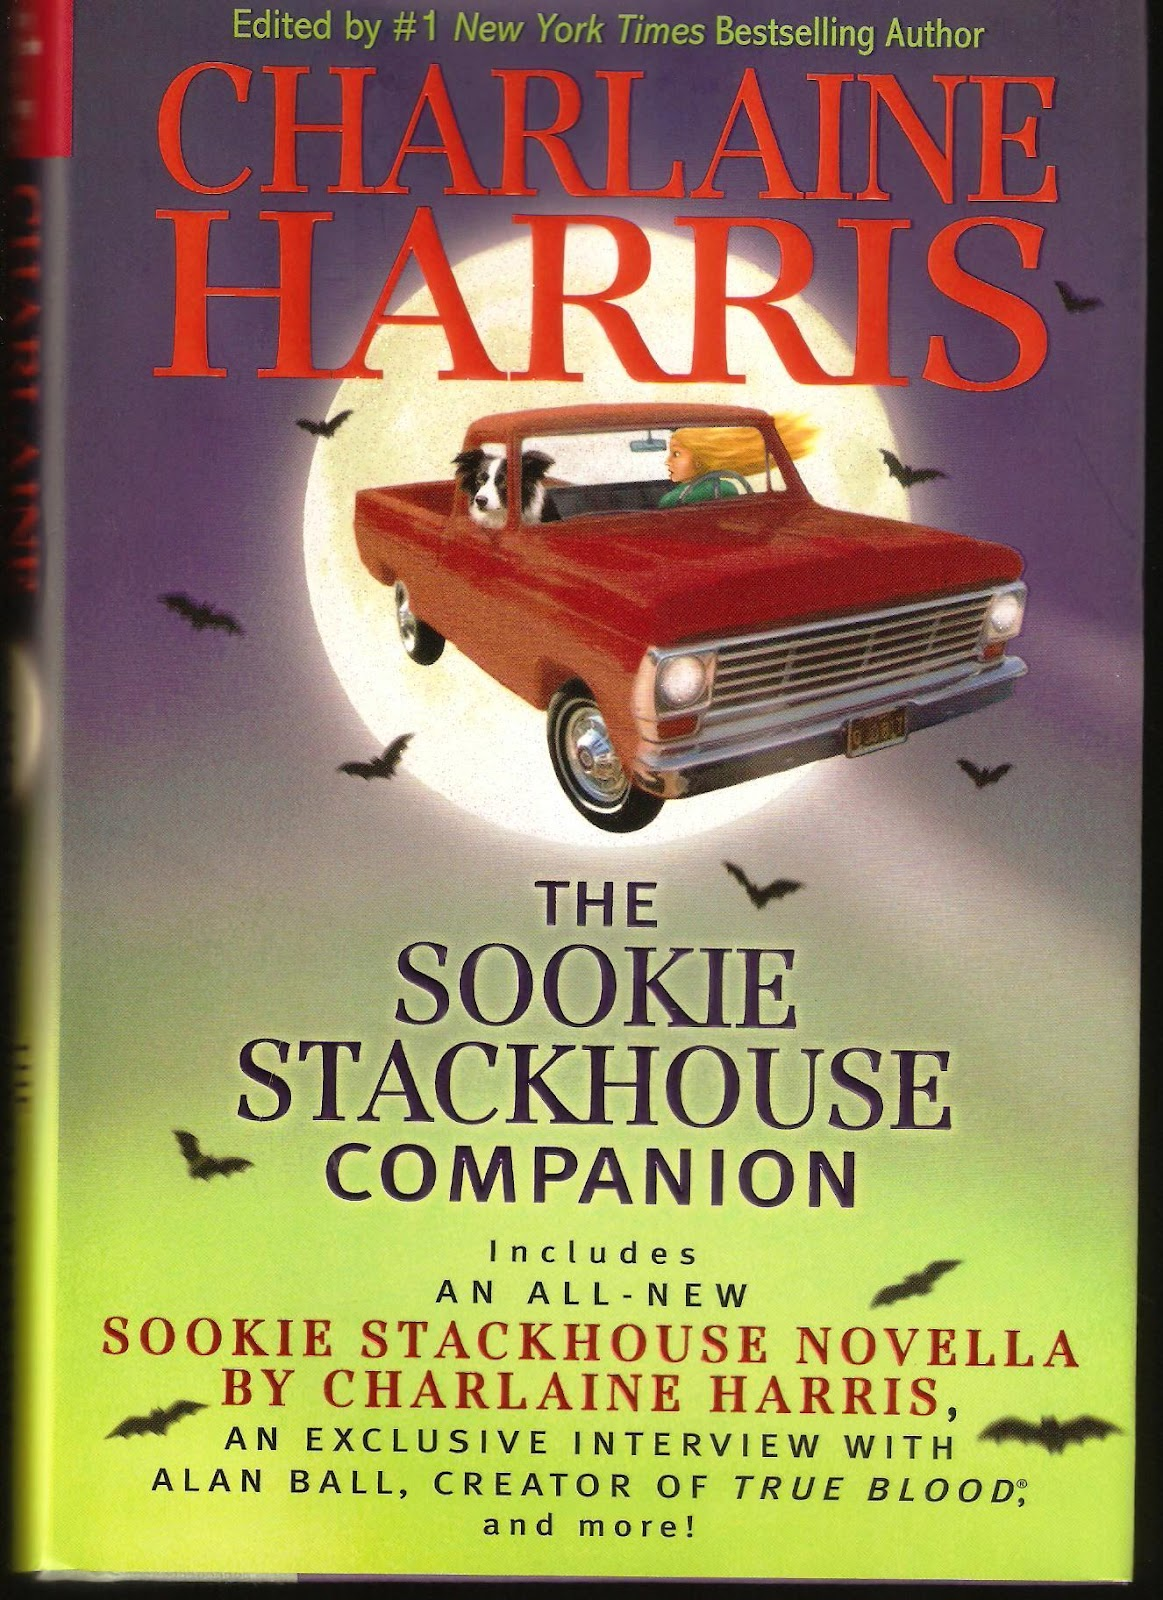 Sooo, I'm Almost Ashamed To Admit That It Took Me This Long To Get The Sookie  Stackhousepanion But I Just Bought It Today And Am Psyched To Read It!